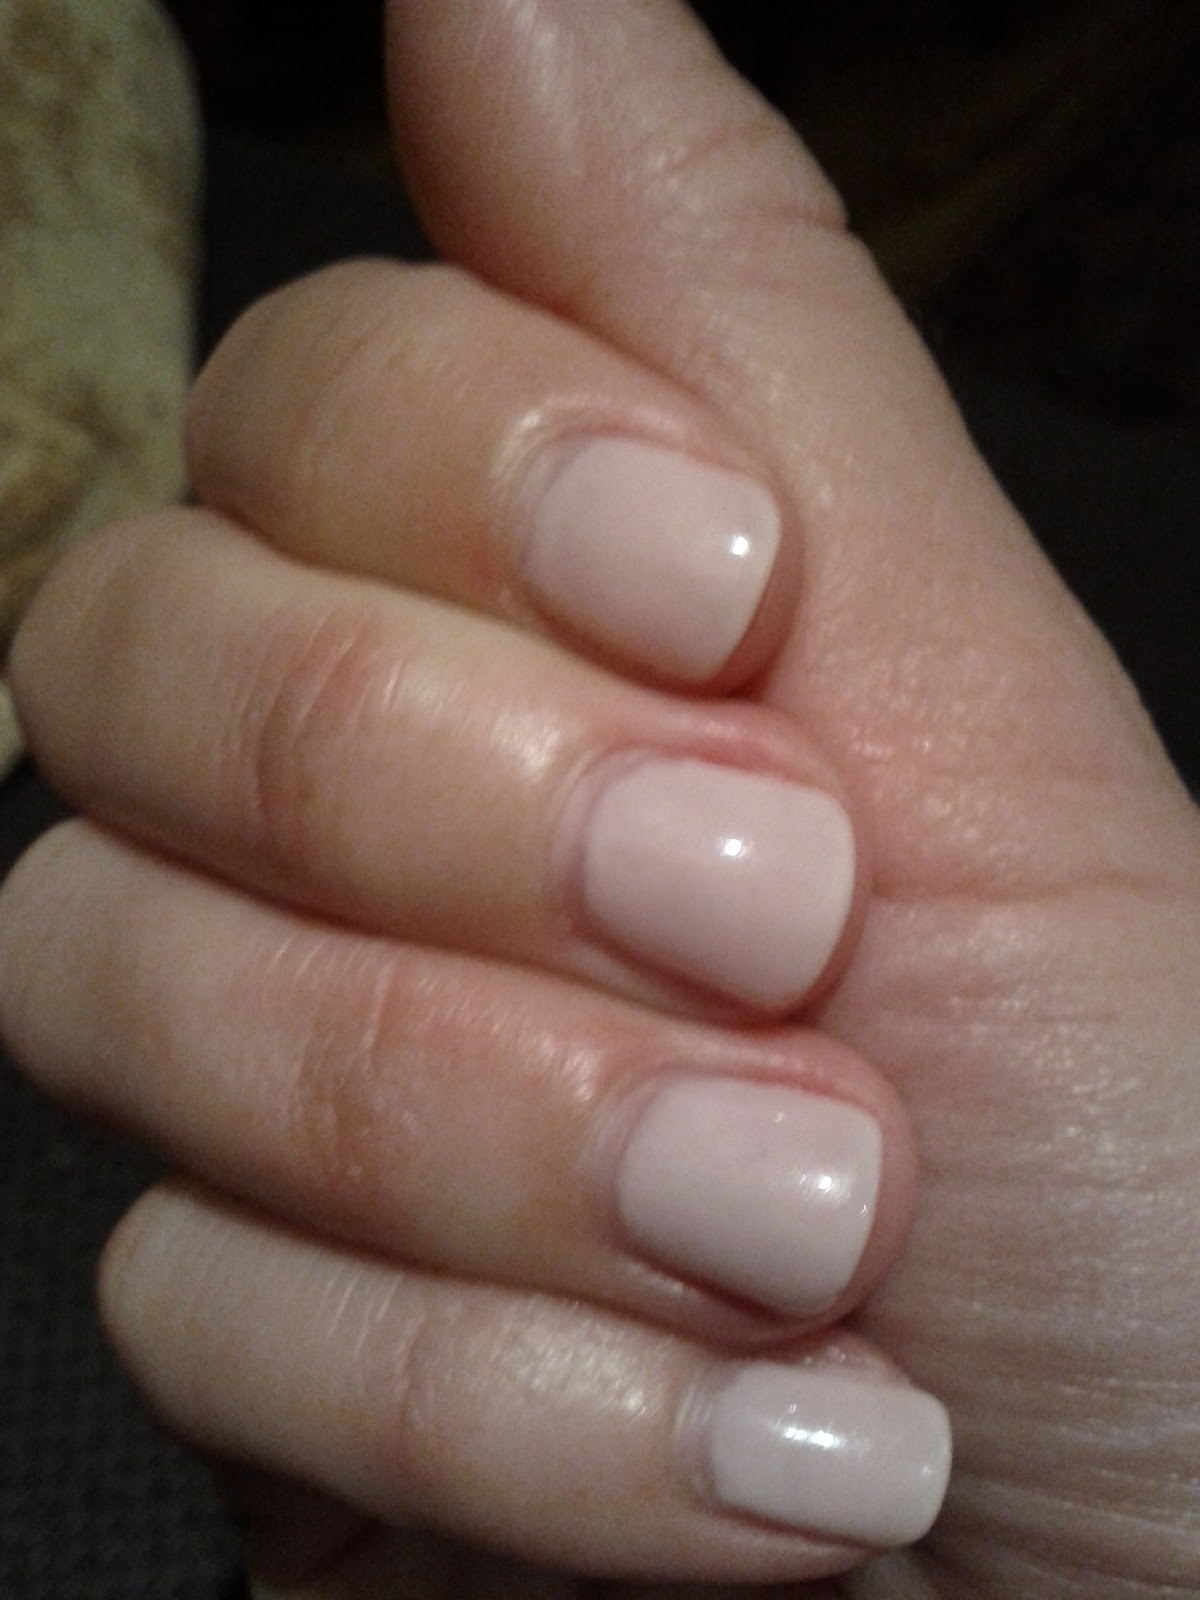 Lipgloss Break: Gelish Nail Polish - 7 days later